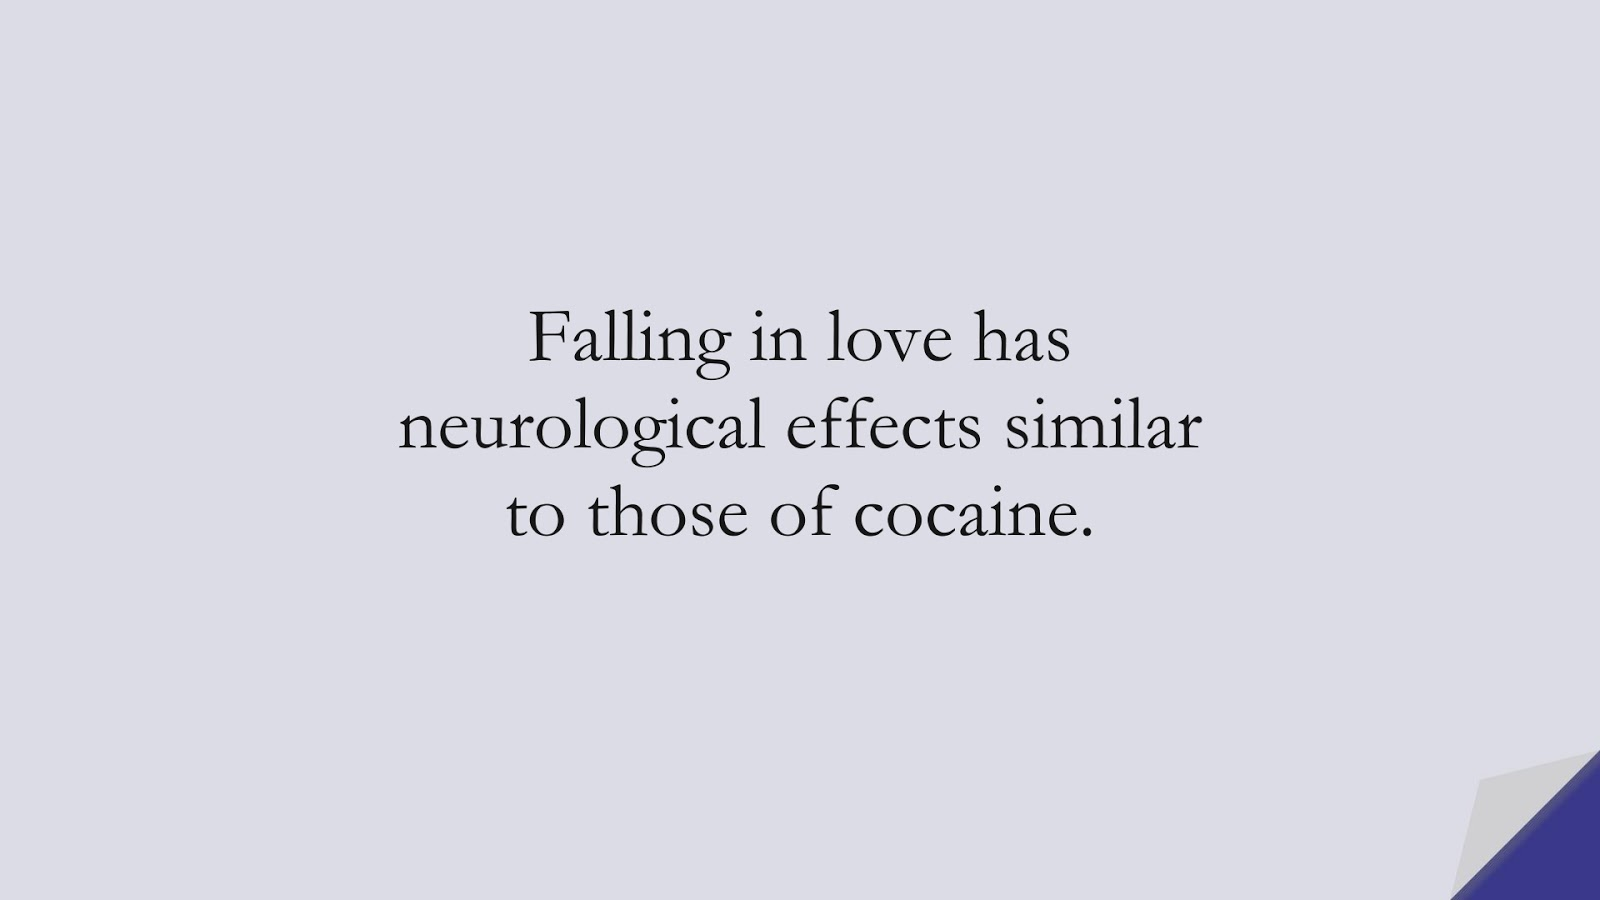 Falling in love has neurological effects similar to those of cocaine.FALSE